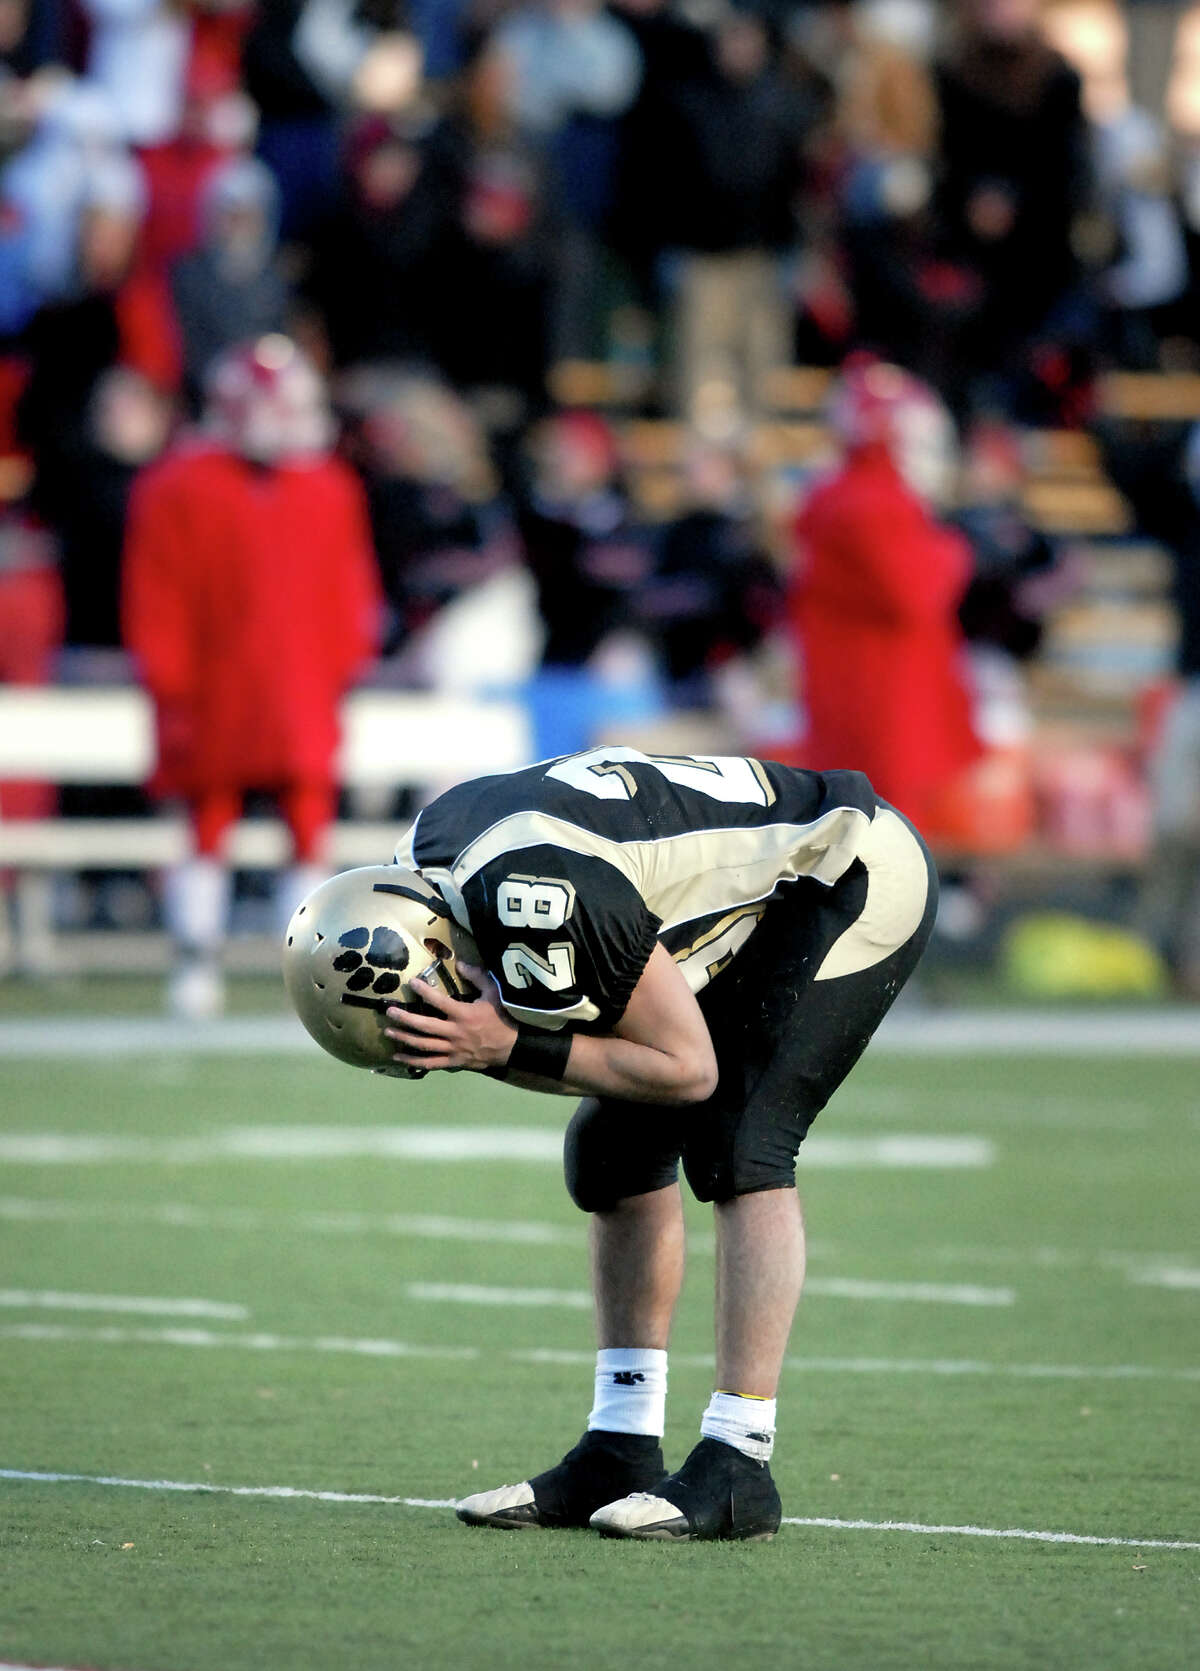 sp-football-ag-12/2/07 Joseph Robichaud of Daniel Hand reacts after their loss to New Canaan in the Class MM championship in Trumbull on 12/2/2007. Photo by Arnold Gold AG0238A